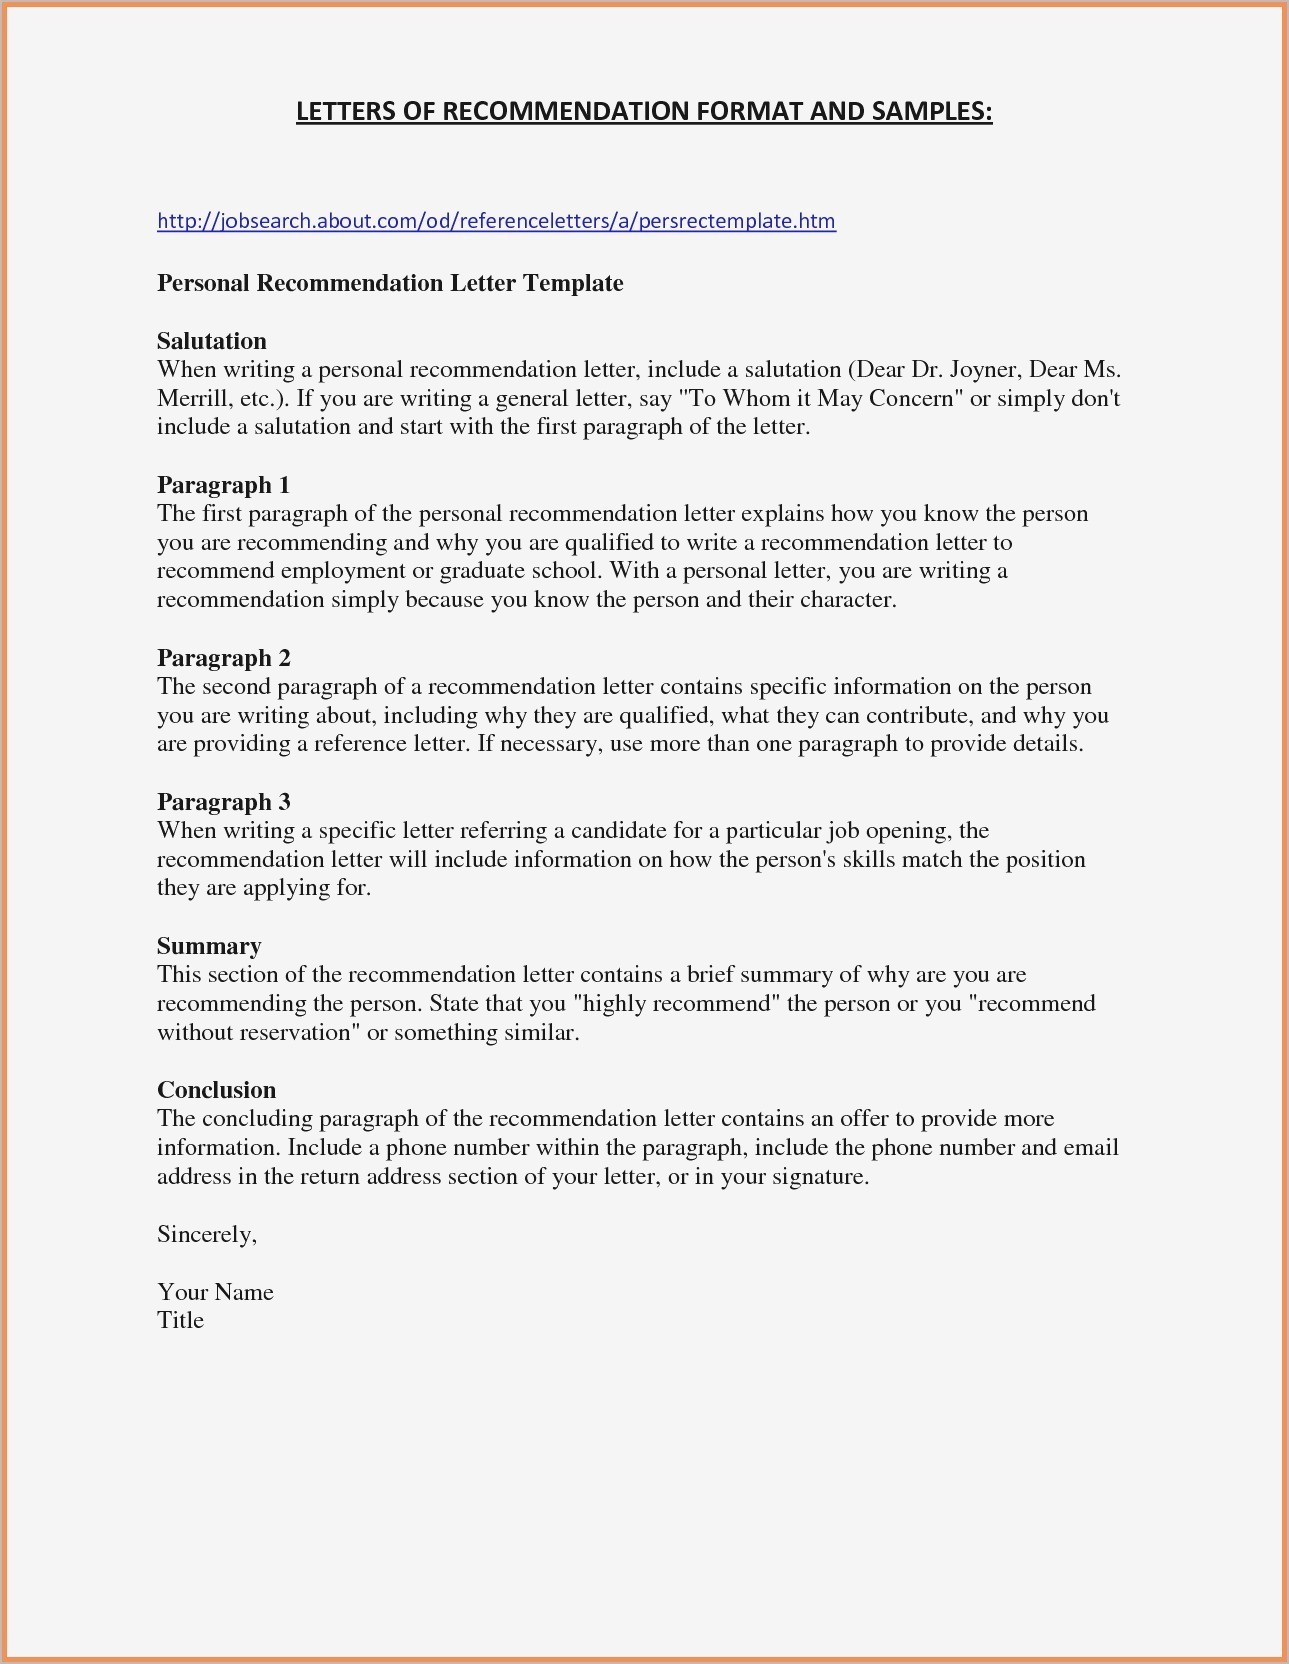 General Letter Of Recommendation Template - Sample Job Re Mendation Letter New Re Mendation Letter Sample for